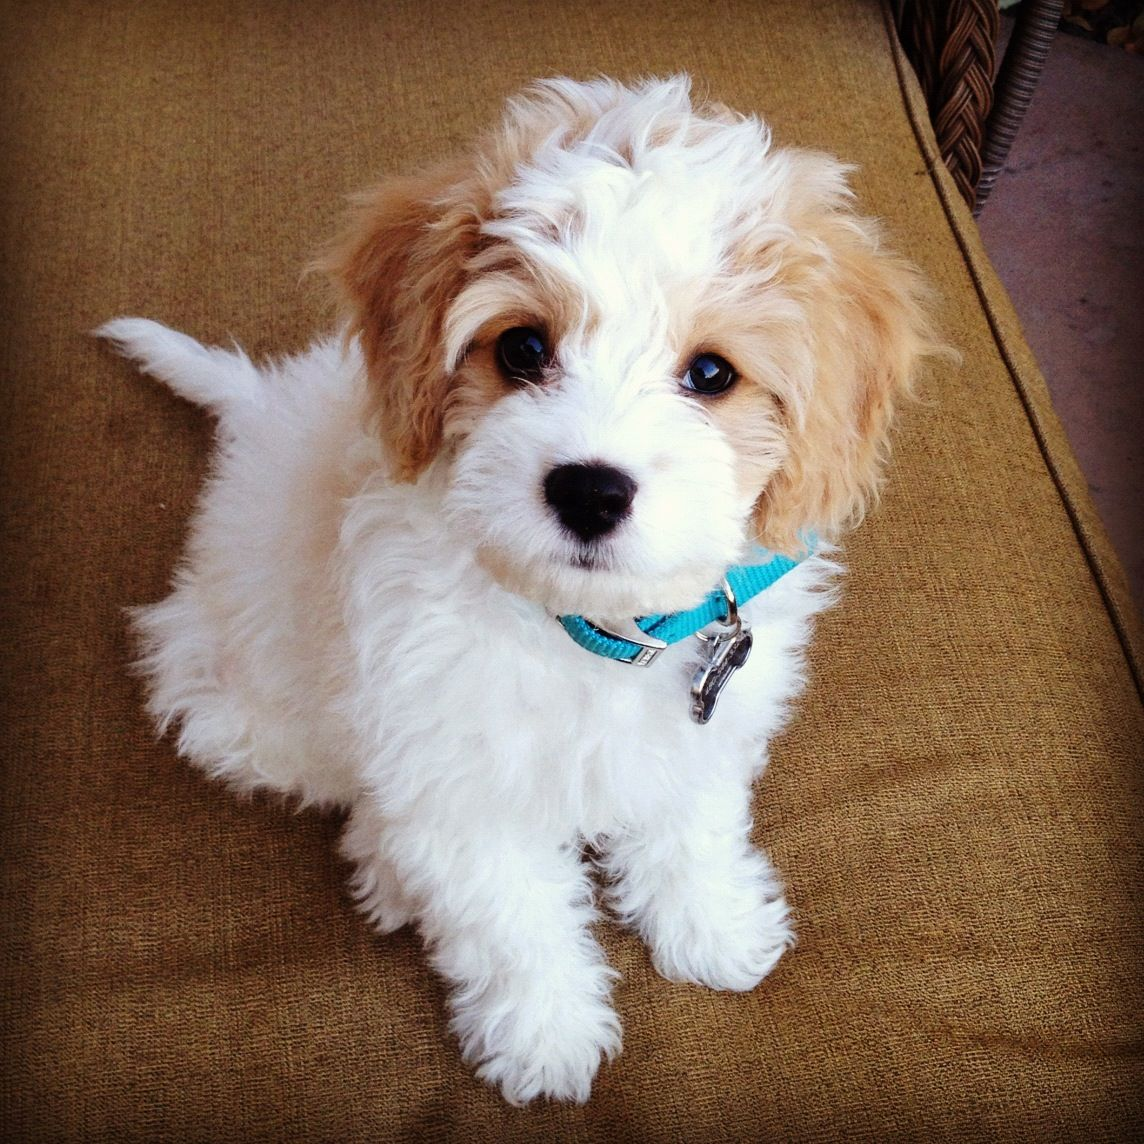 My new favorite dog cavachon animals adorbs for Fluffy little dog breeds